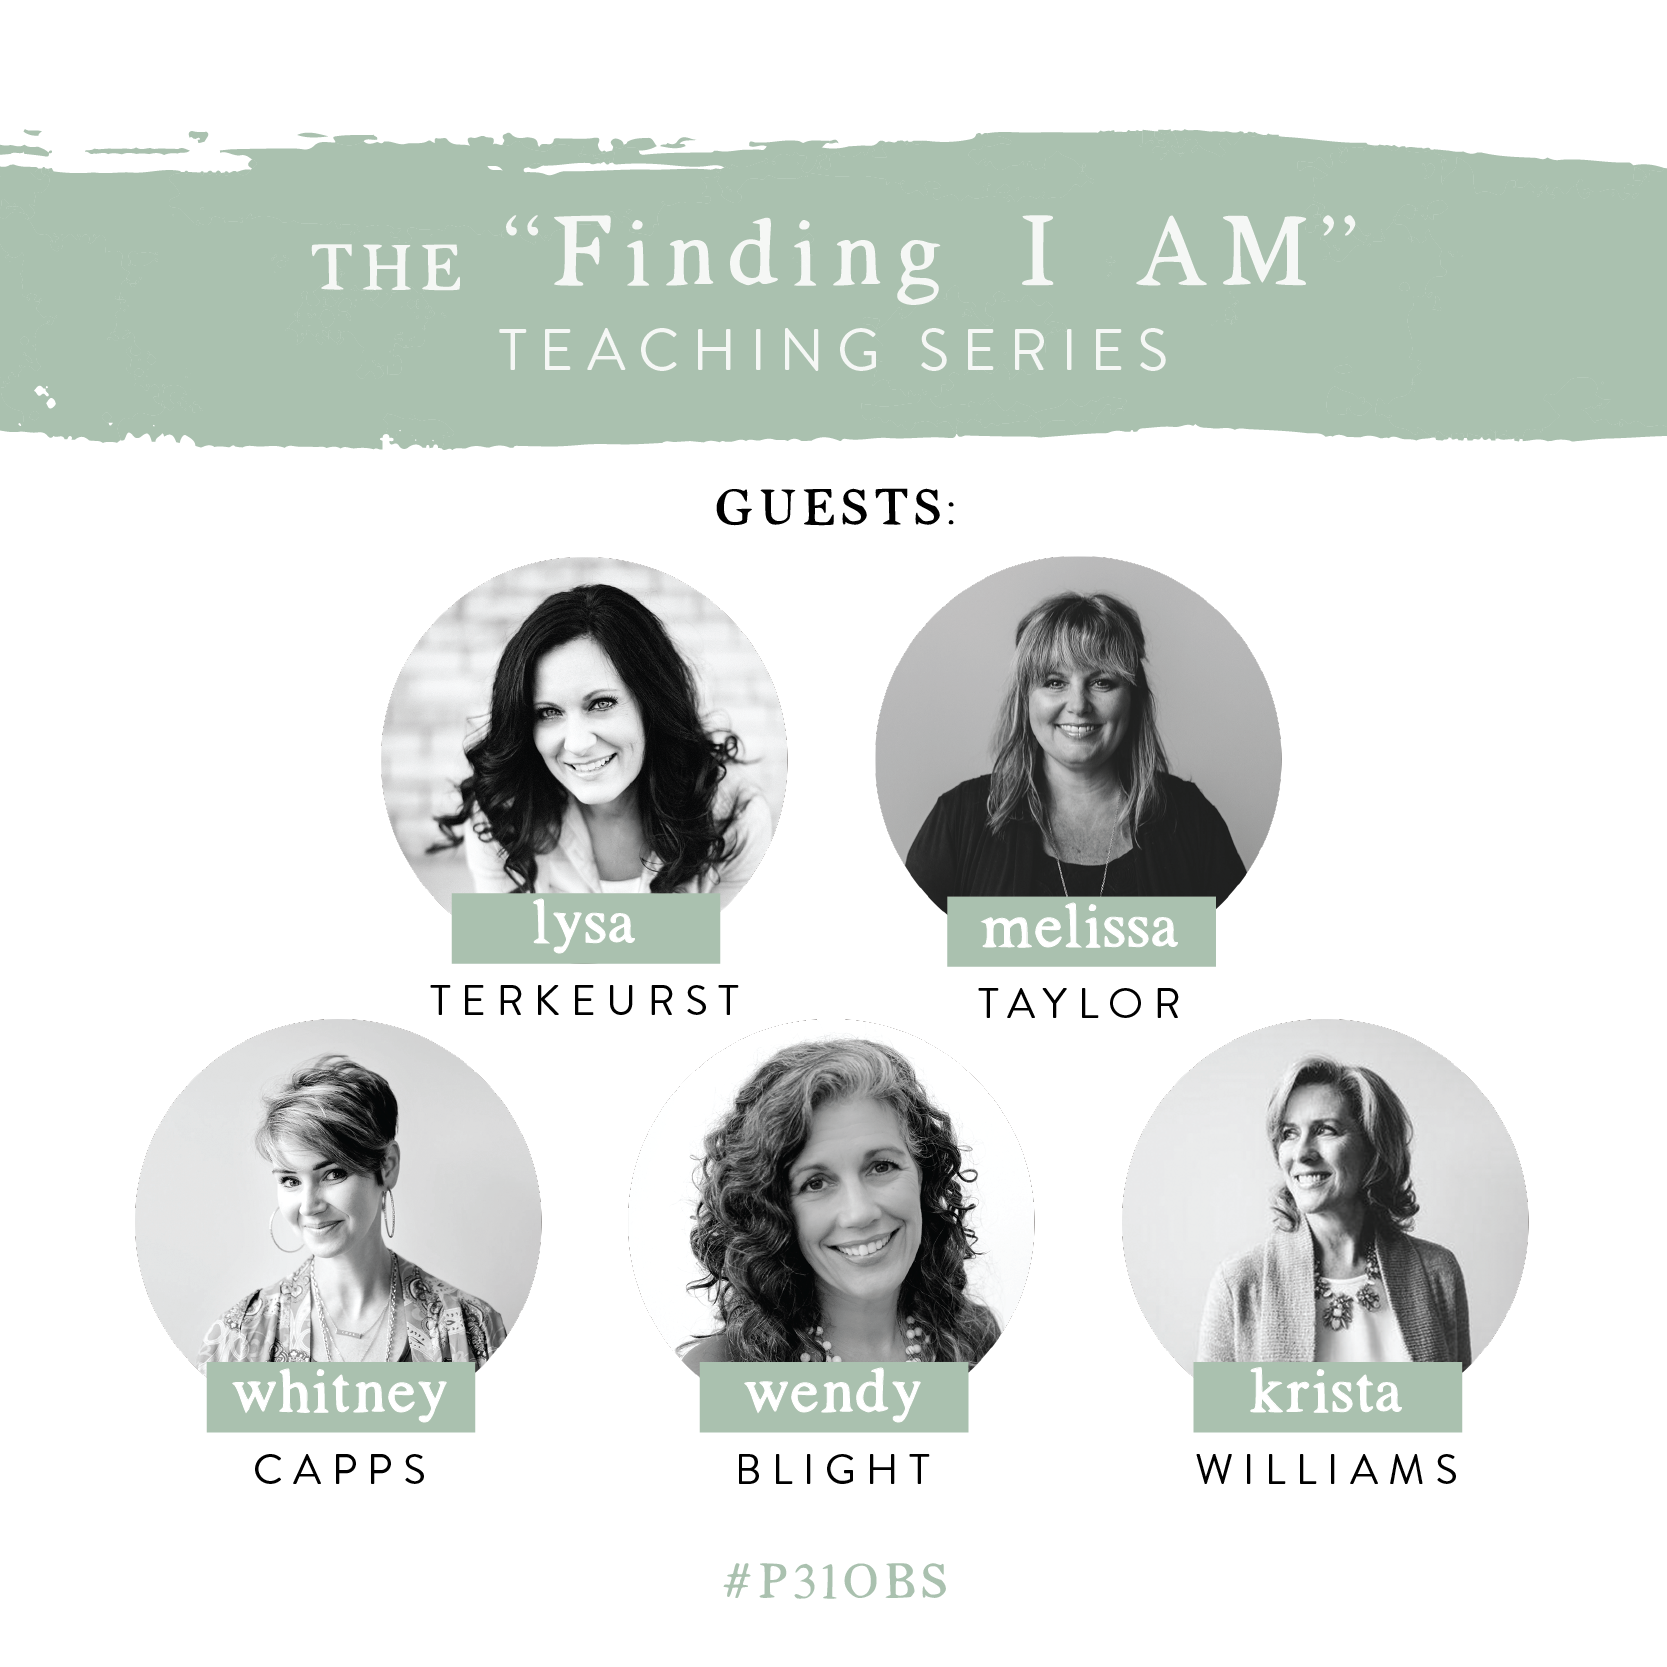 Finding I AM Teaching Series